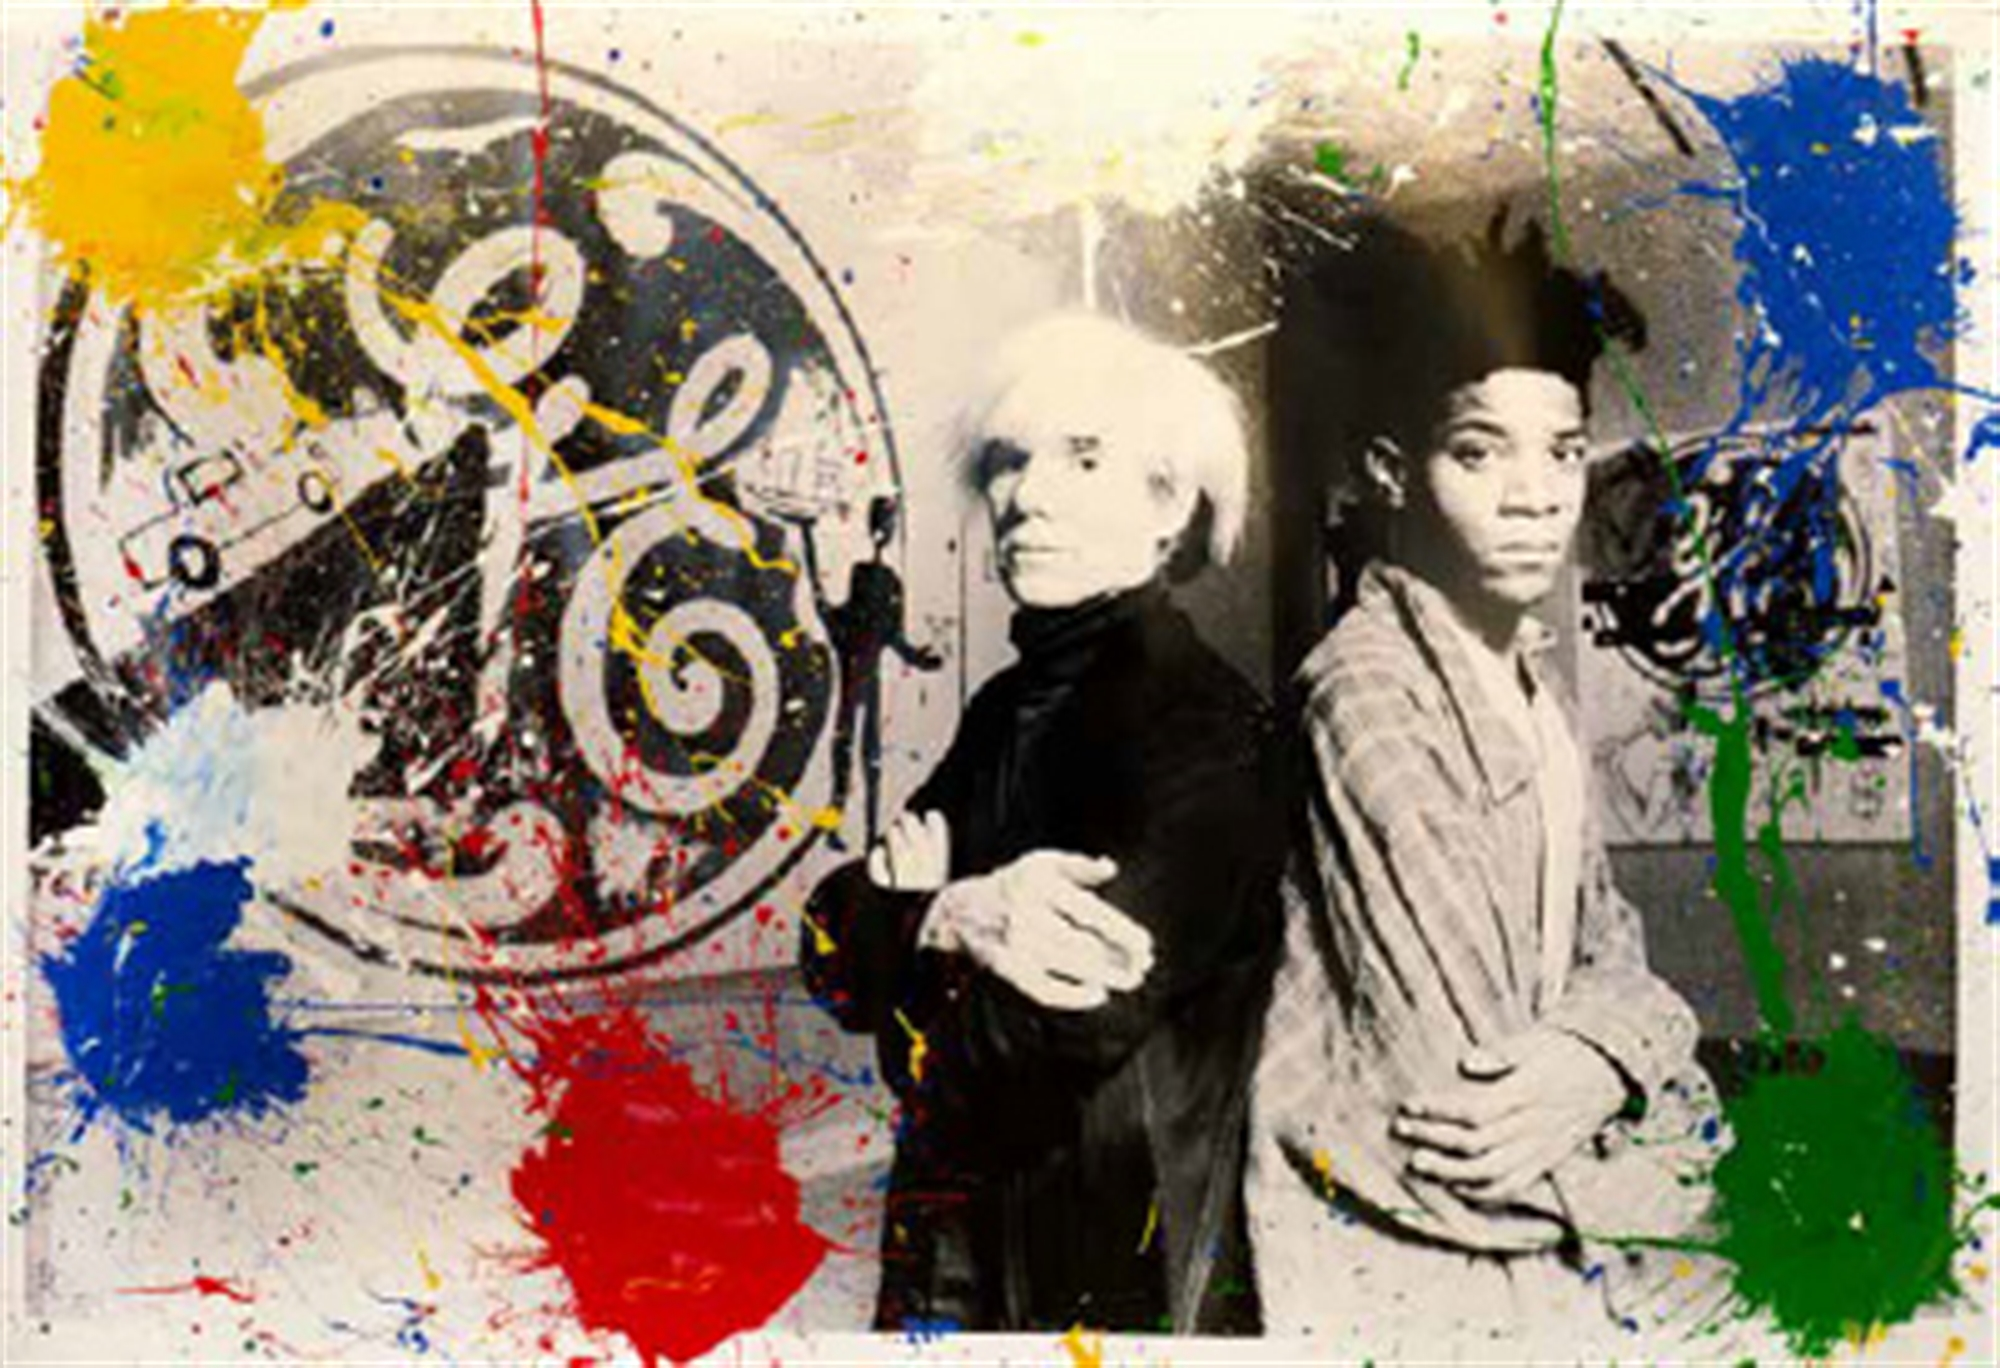 The Masters by Mr. Brainwash